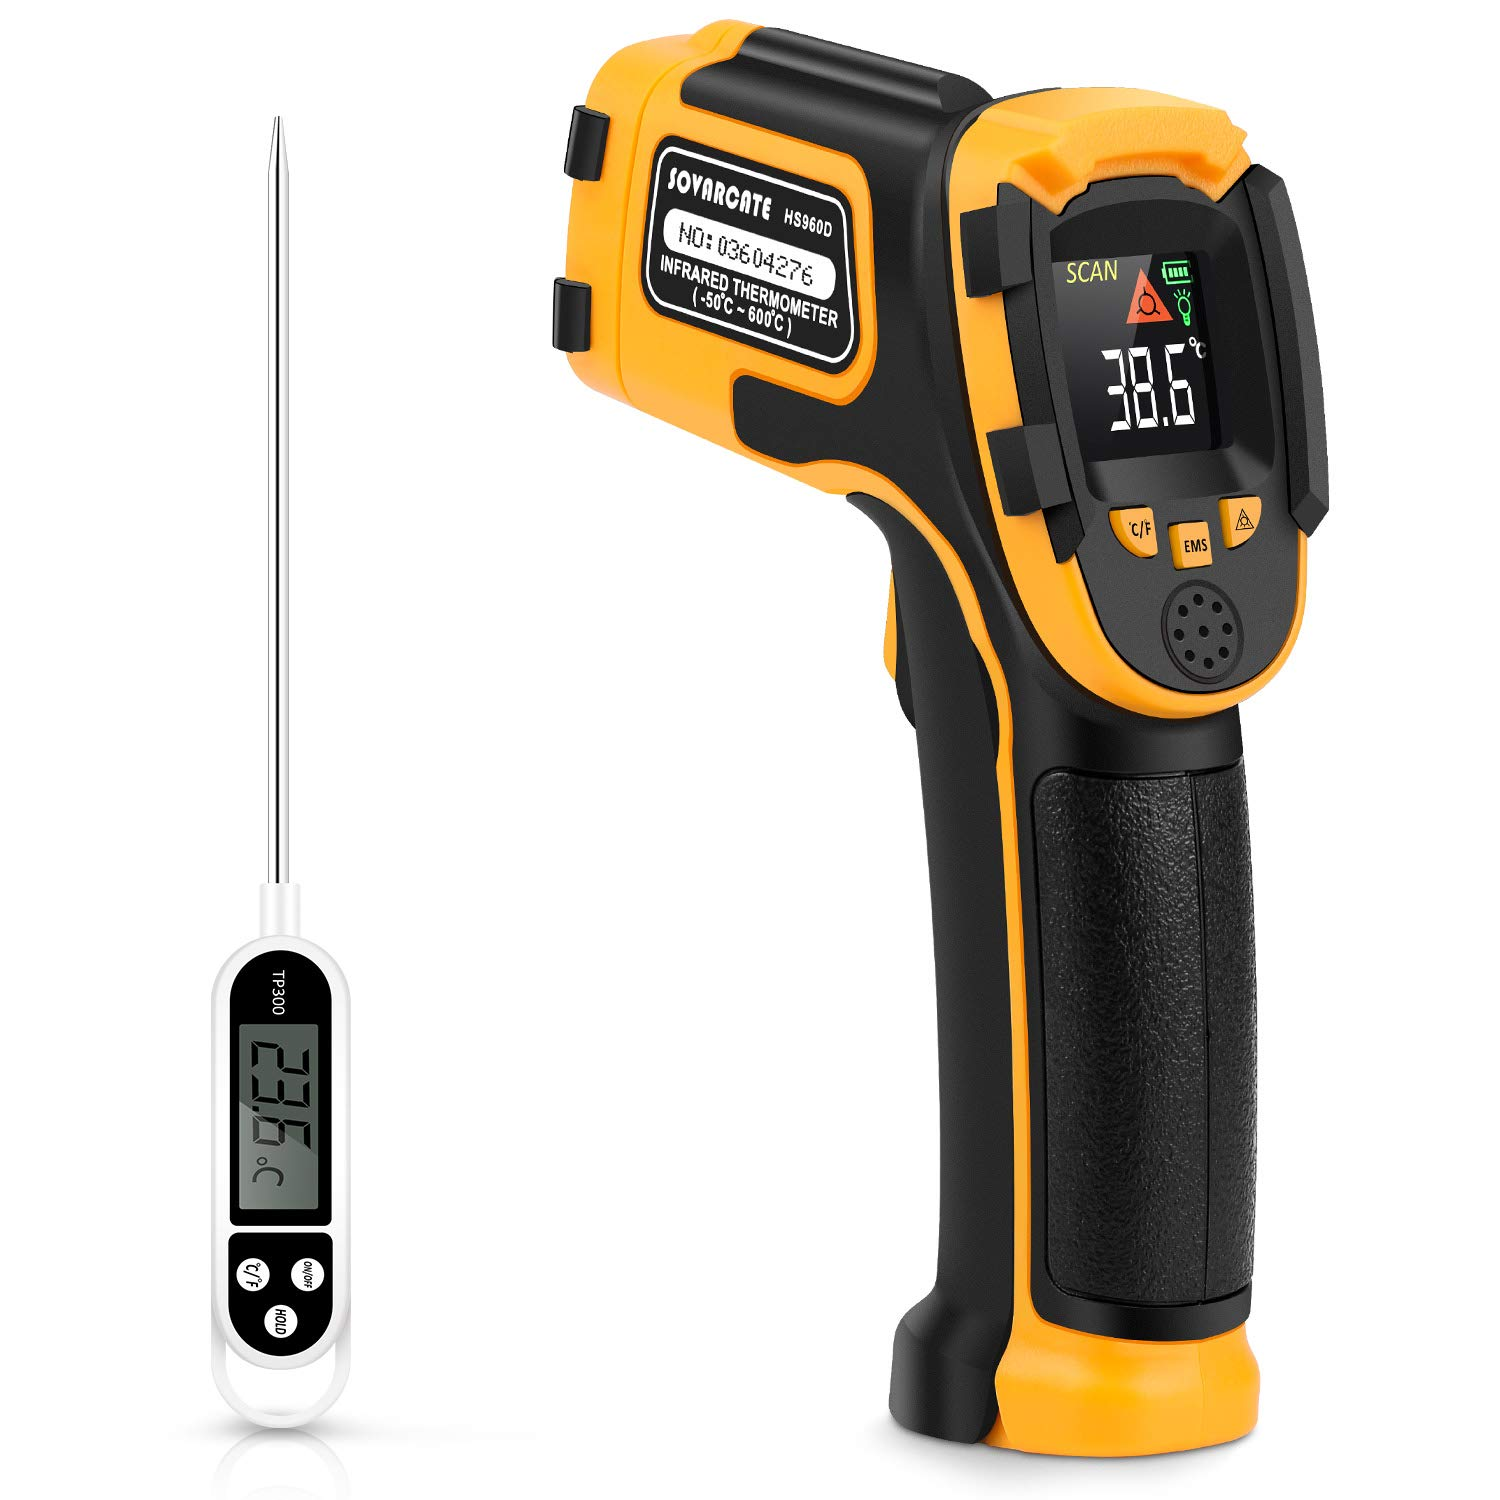 Infrared Thermometer Non-Contact Digital Laser Temperature Gun with Color Display -58℉~1112℉(-50℃~600℃) Adjustable Emissivity - Temperature Probe for Cooking/BBQ/Freezer - Meat Thermometer Included by SOVARCATE (Image #1)